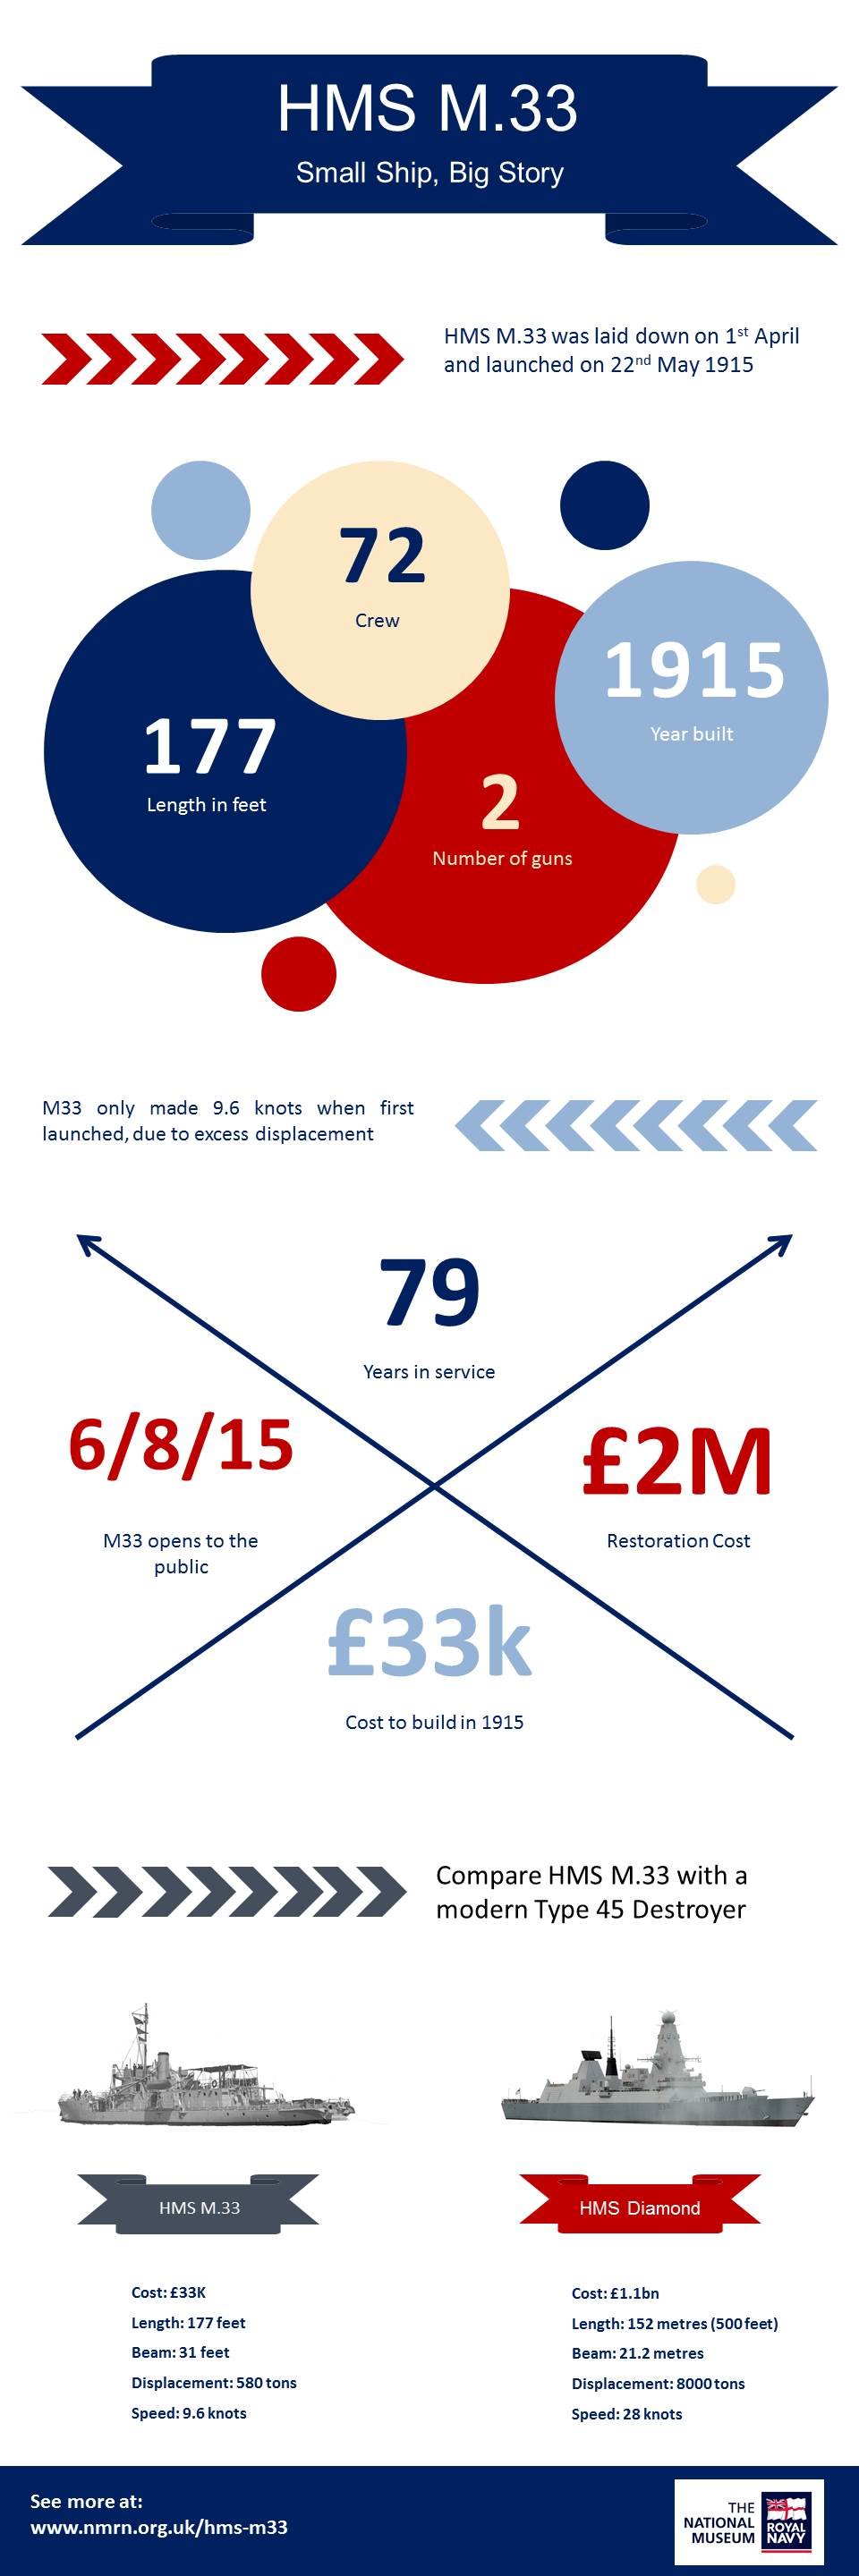 Infographic showing facts and figures on HMS M33